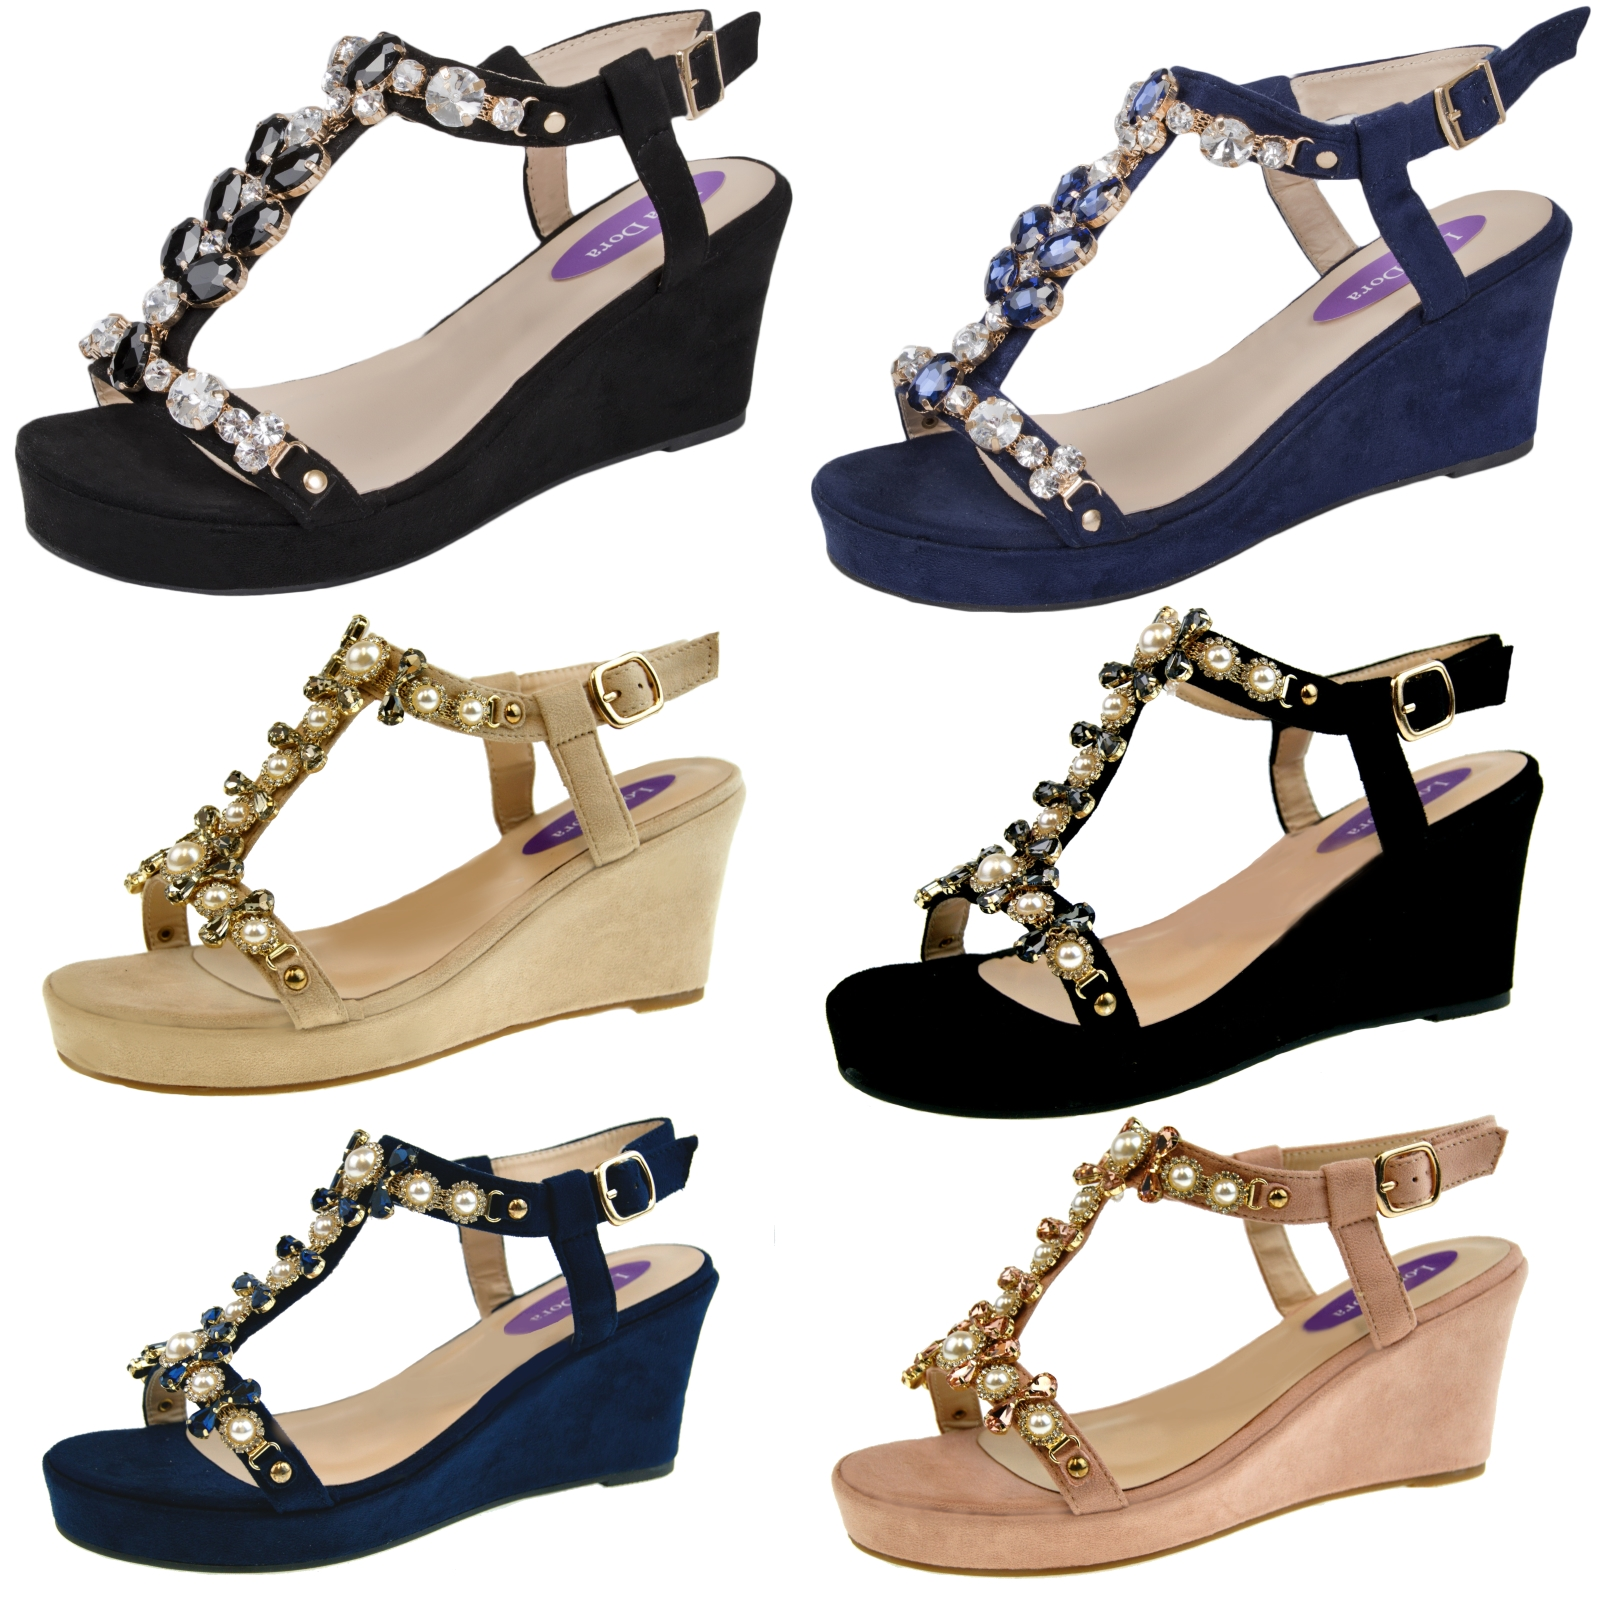 72e7fb6614ad Ladies Faux Suede Wedge High Heels Summer Jewel Wedges Womens Party Sandals  Size